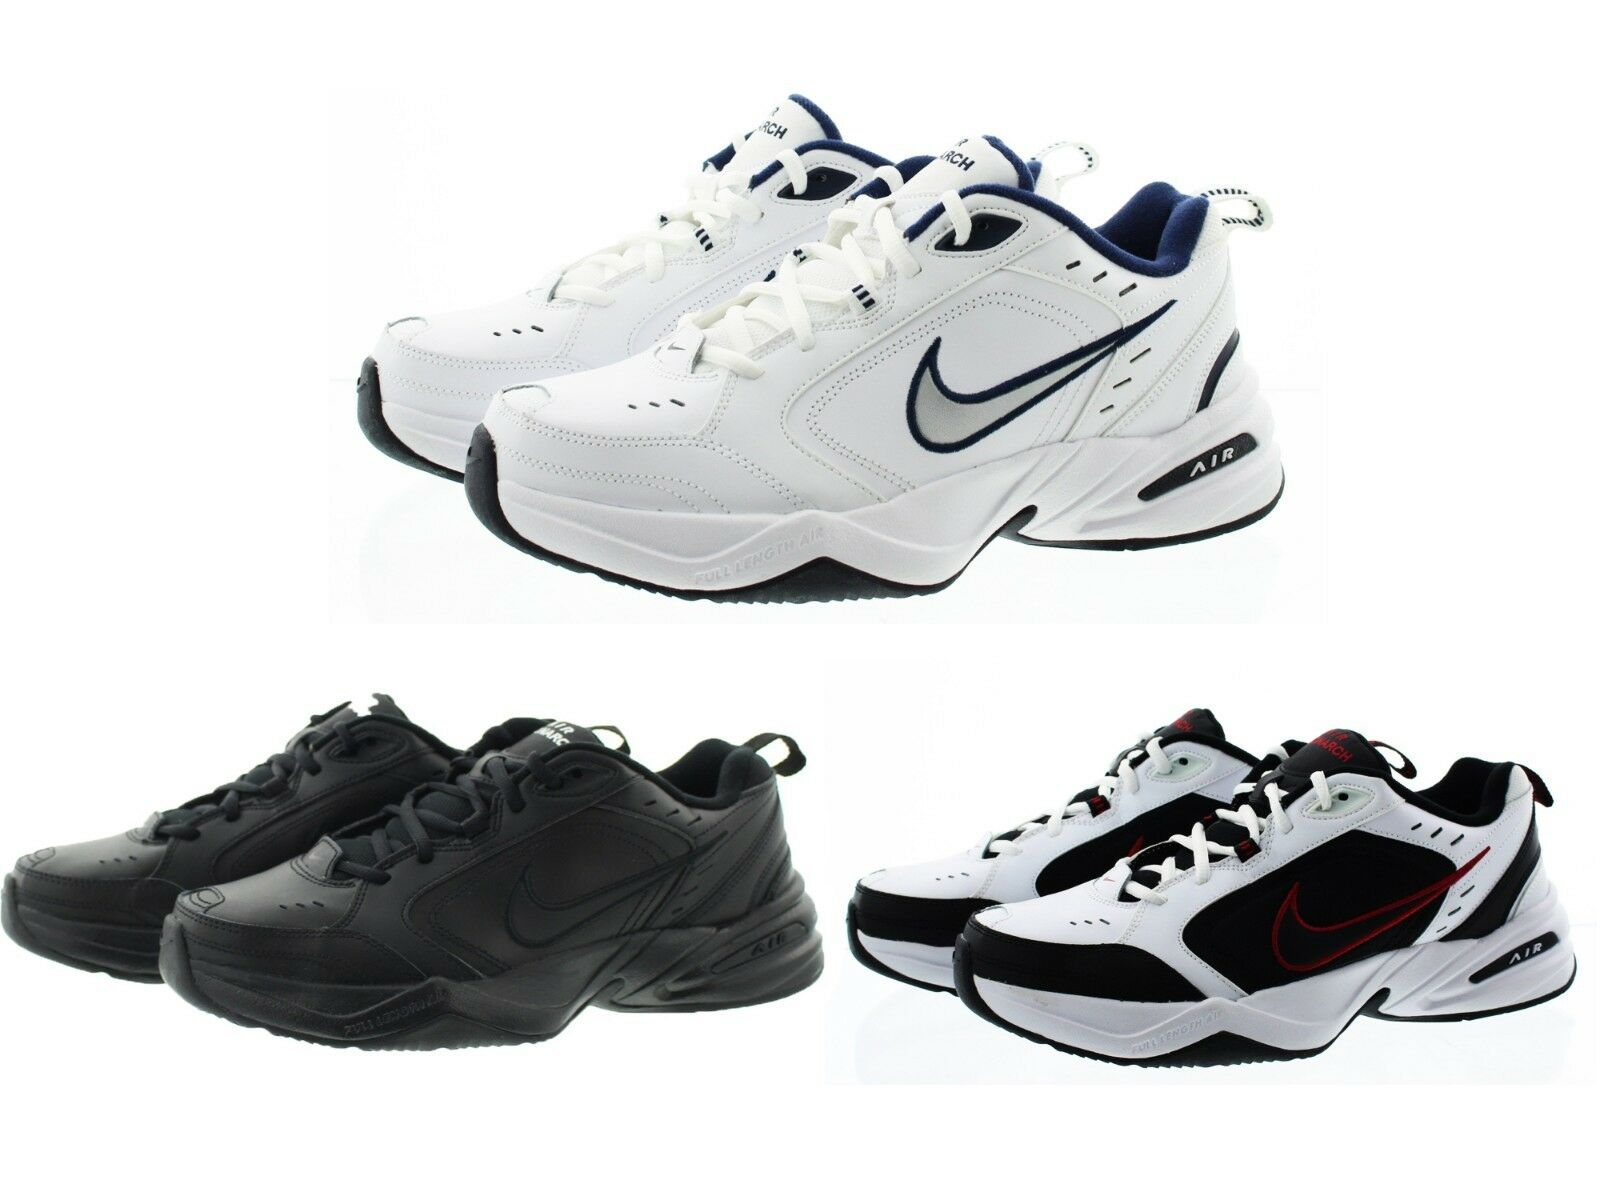 Nike 415445 Mens Air Monarch IV Cross Trainer Low Top Athletic Shoes Sneakers New shoes for men and women, limited time discount